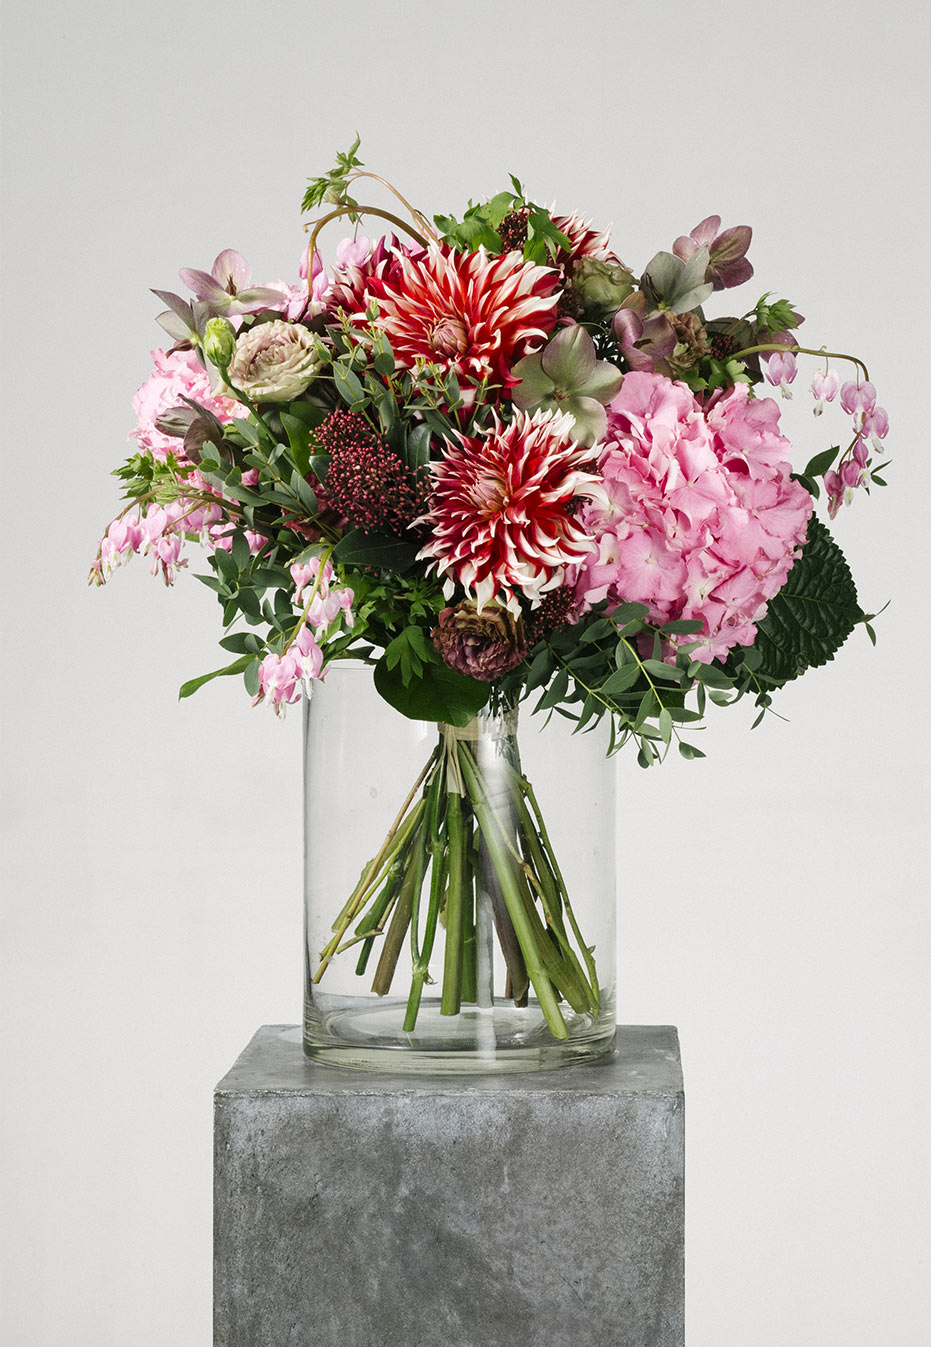 flower bouquet of dahlia and hydrangea by flannel flowers